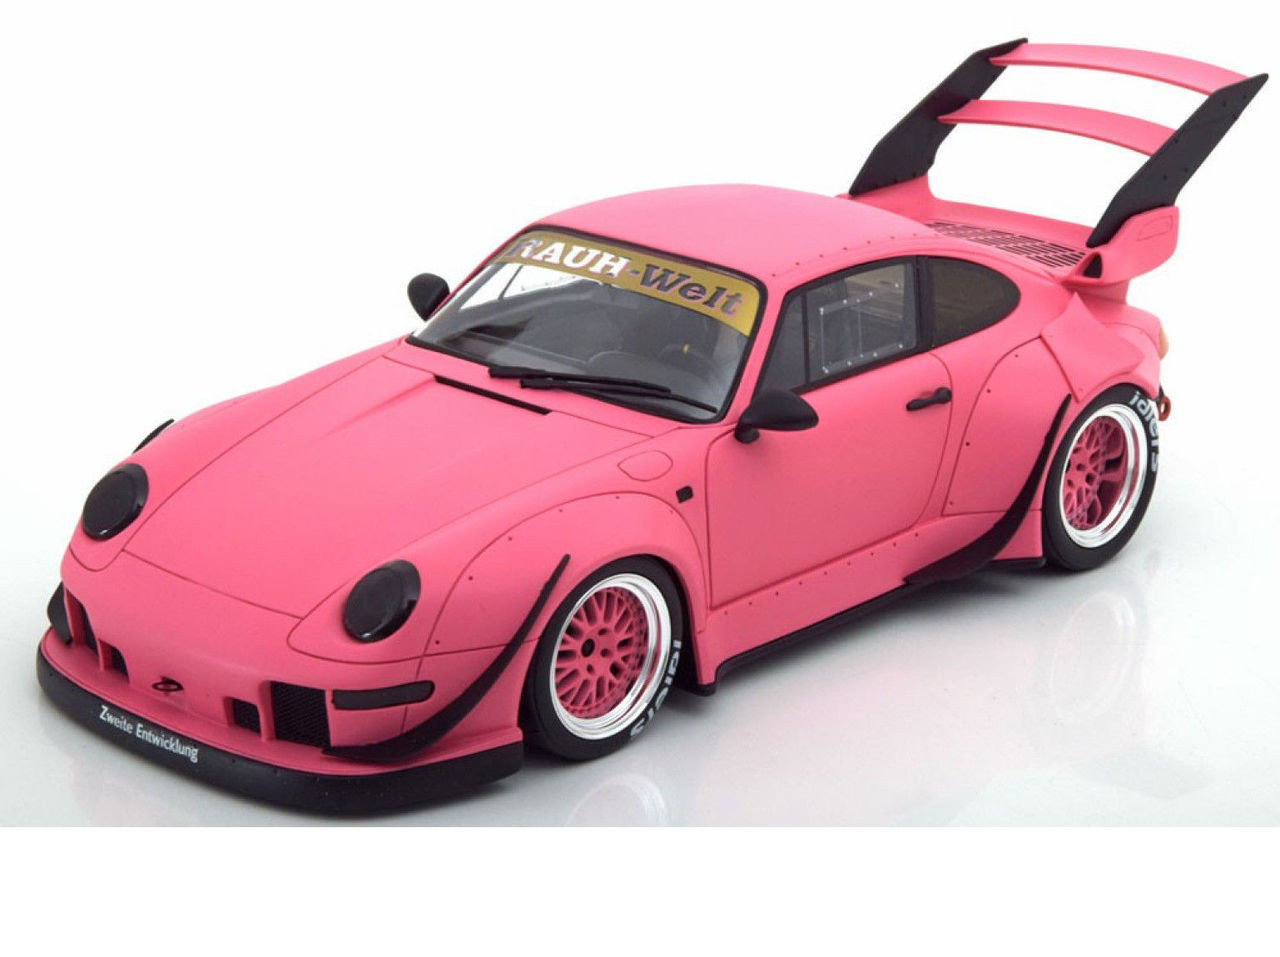 Porsche 993 RWB Rotana Matt Pink 1/18 Model Car by GT Spirit for Kyosho